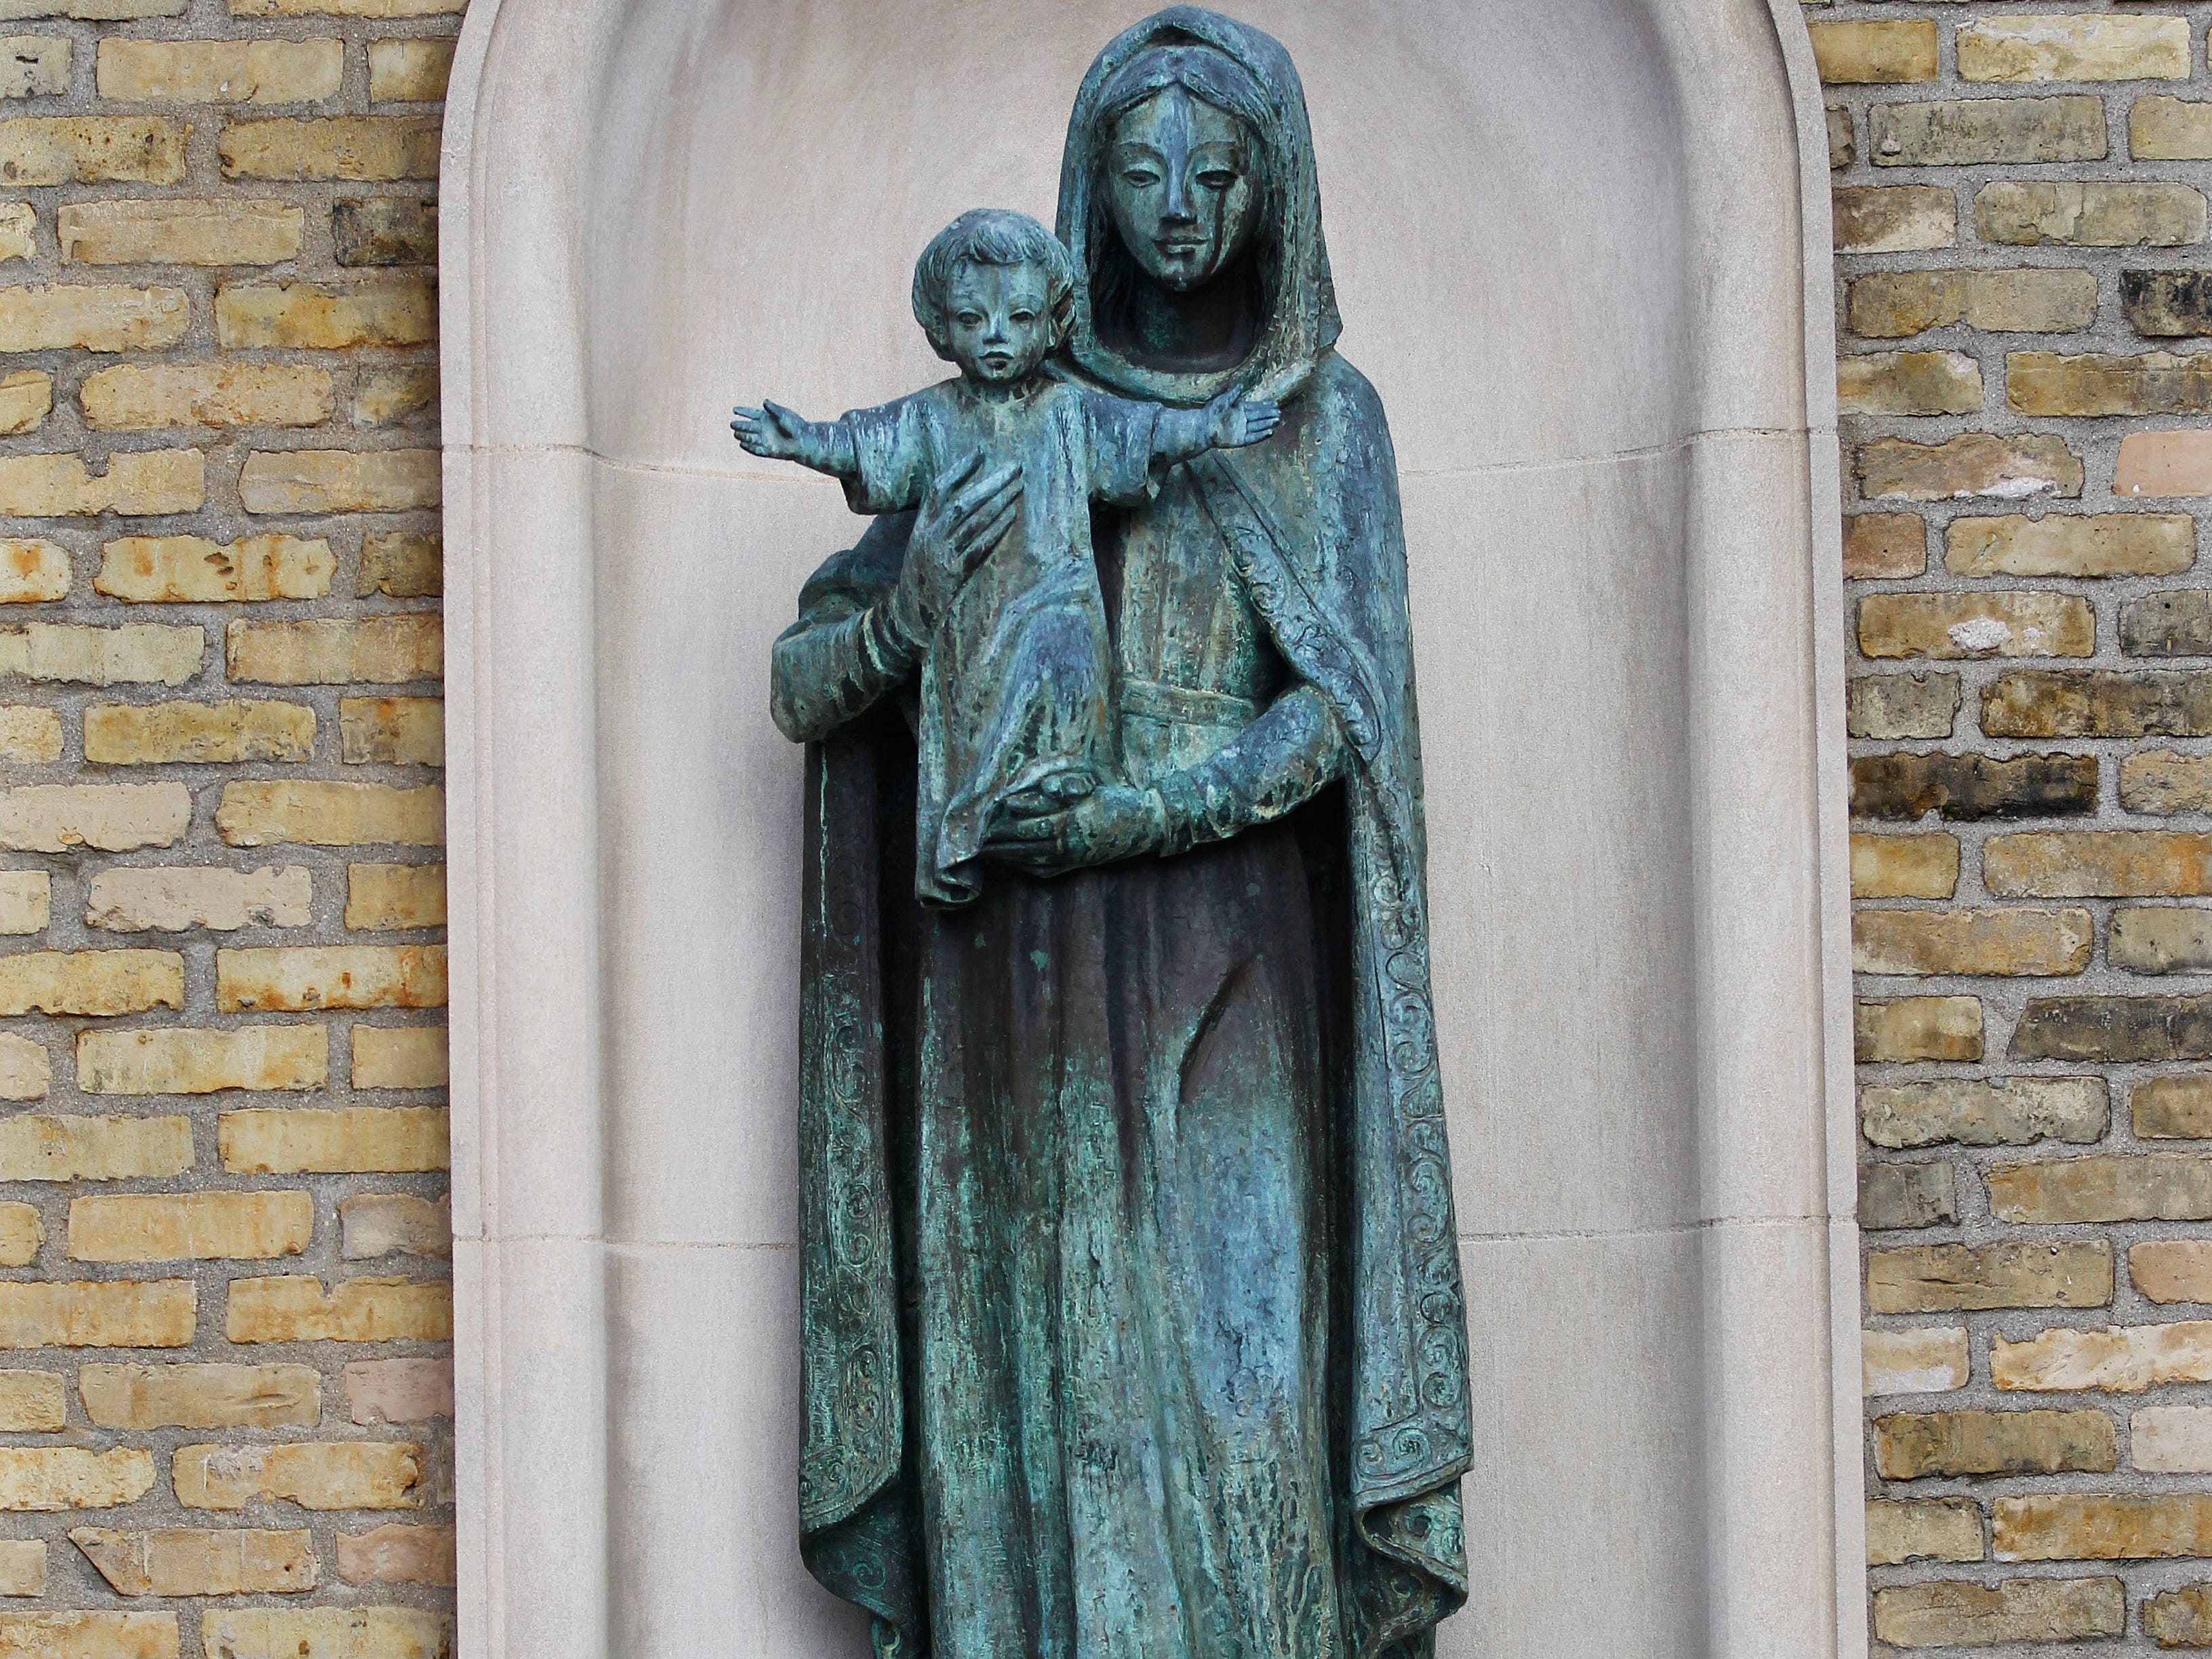 The Virgin Mary with baby Jesus statue at the Cathedral of St. John the Evangelist at 802 N. Jackson St.